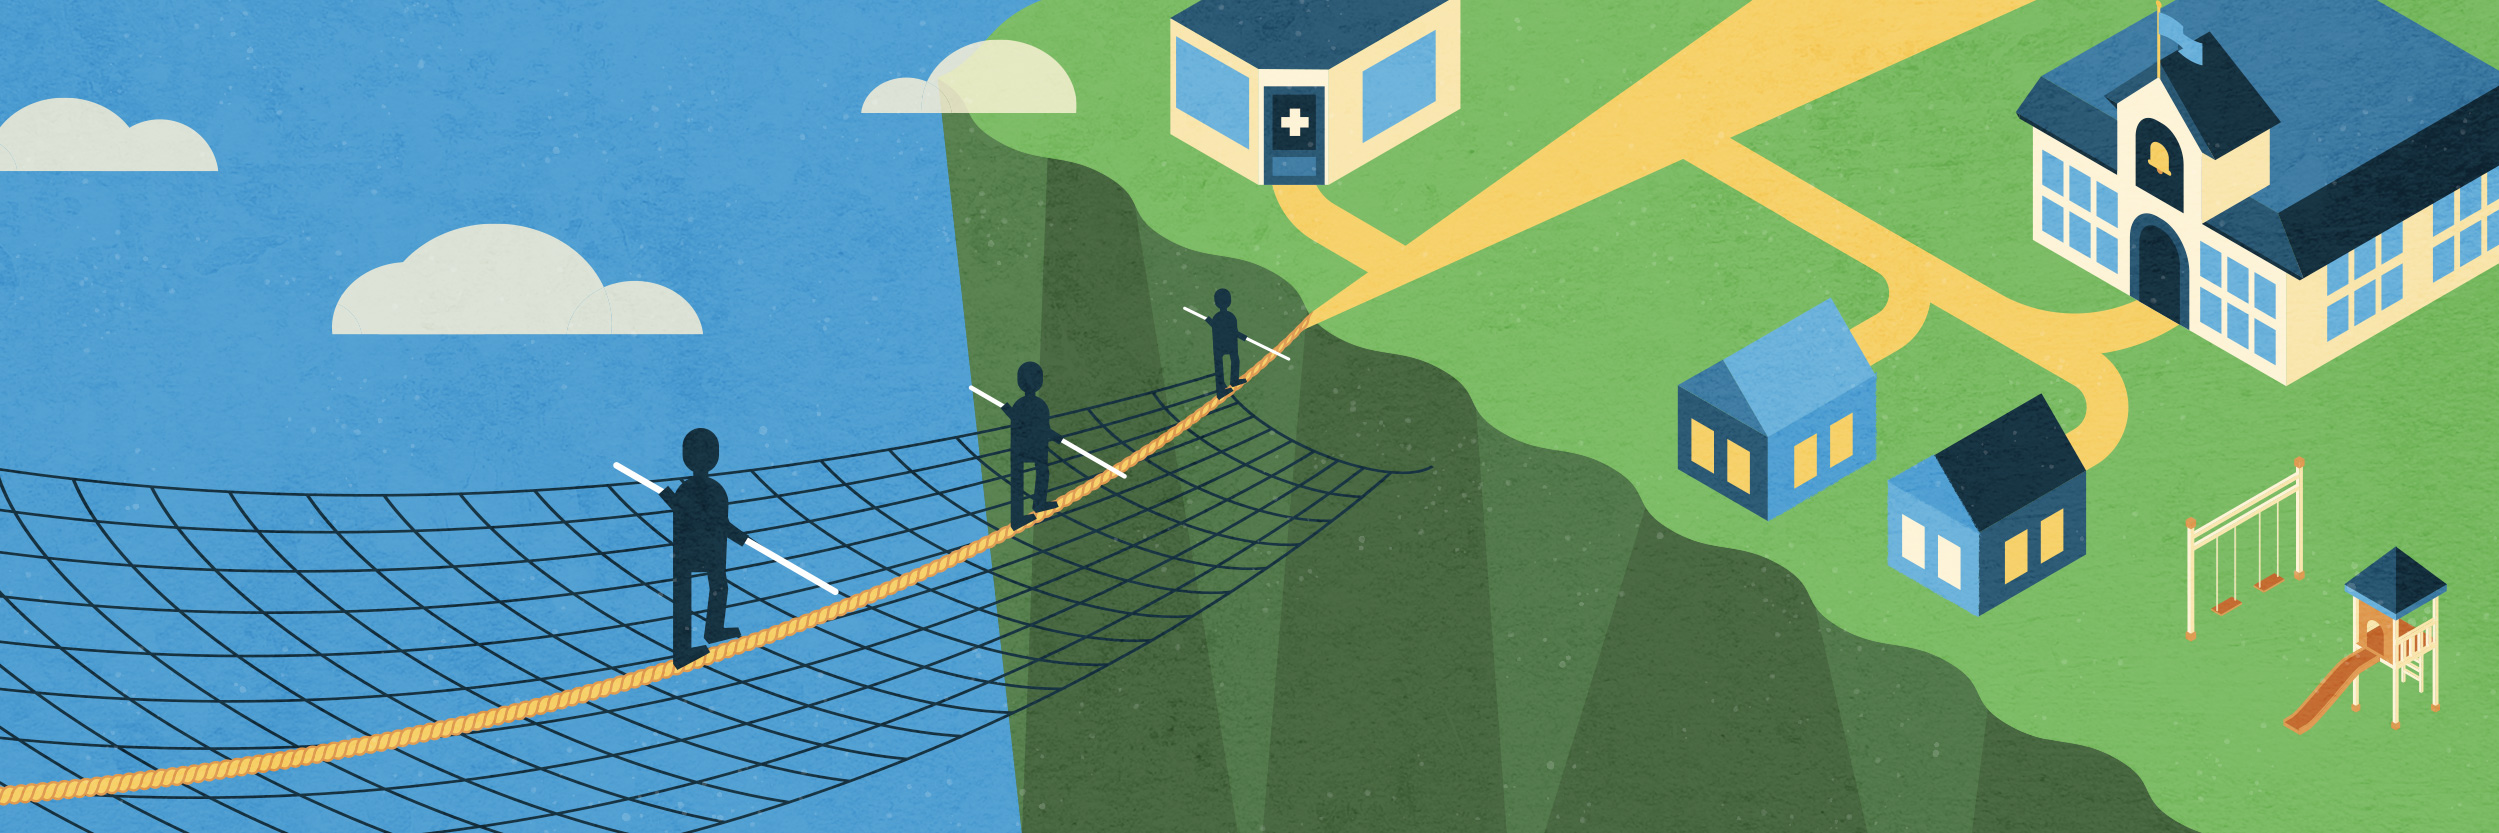 safety net illustration